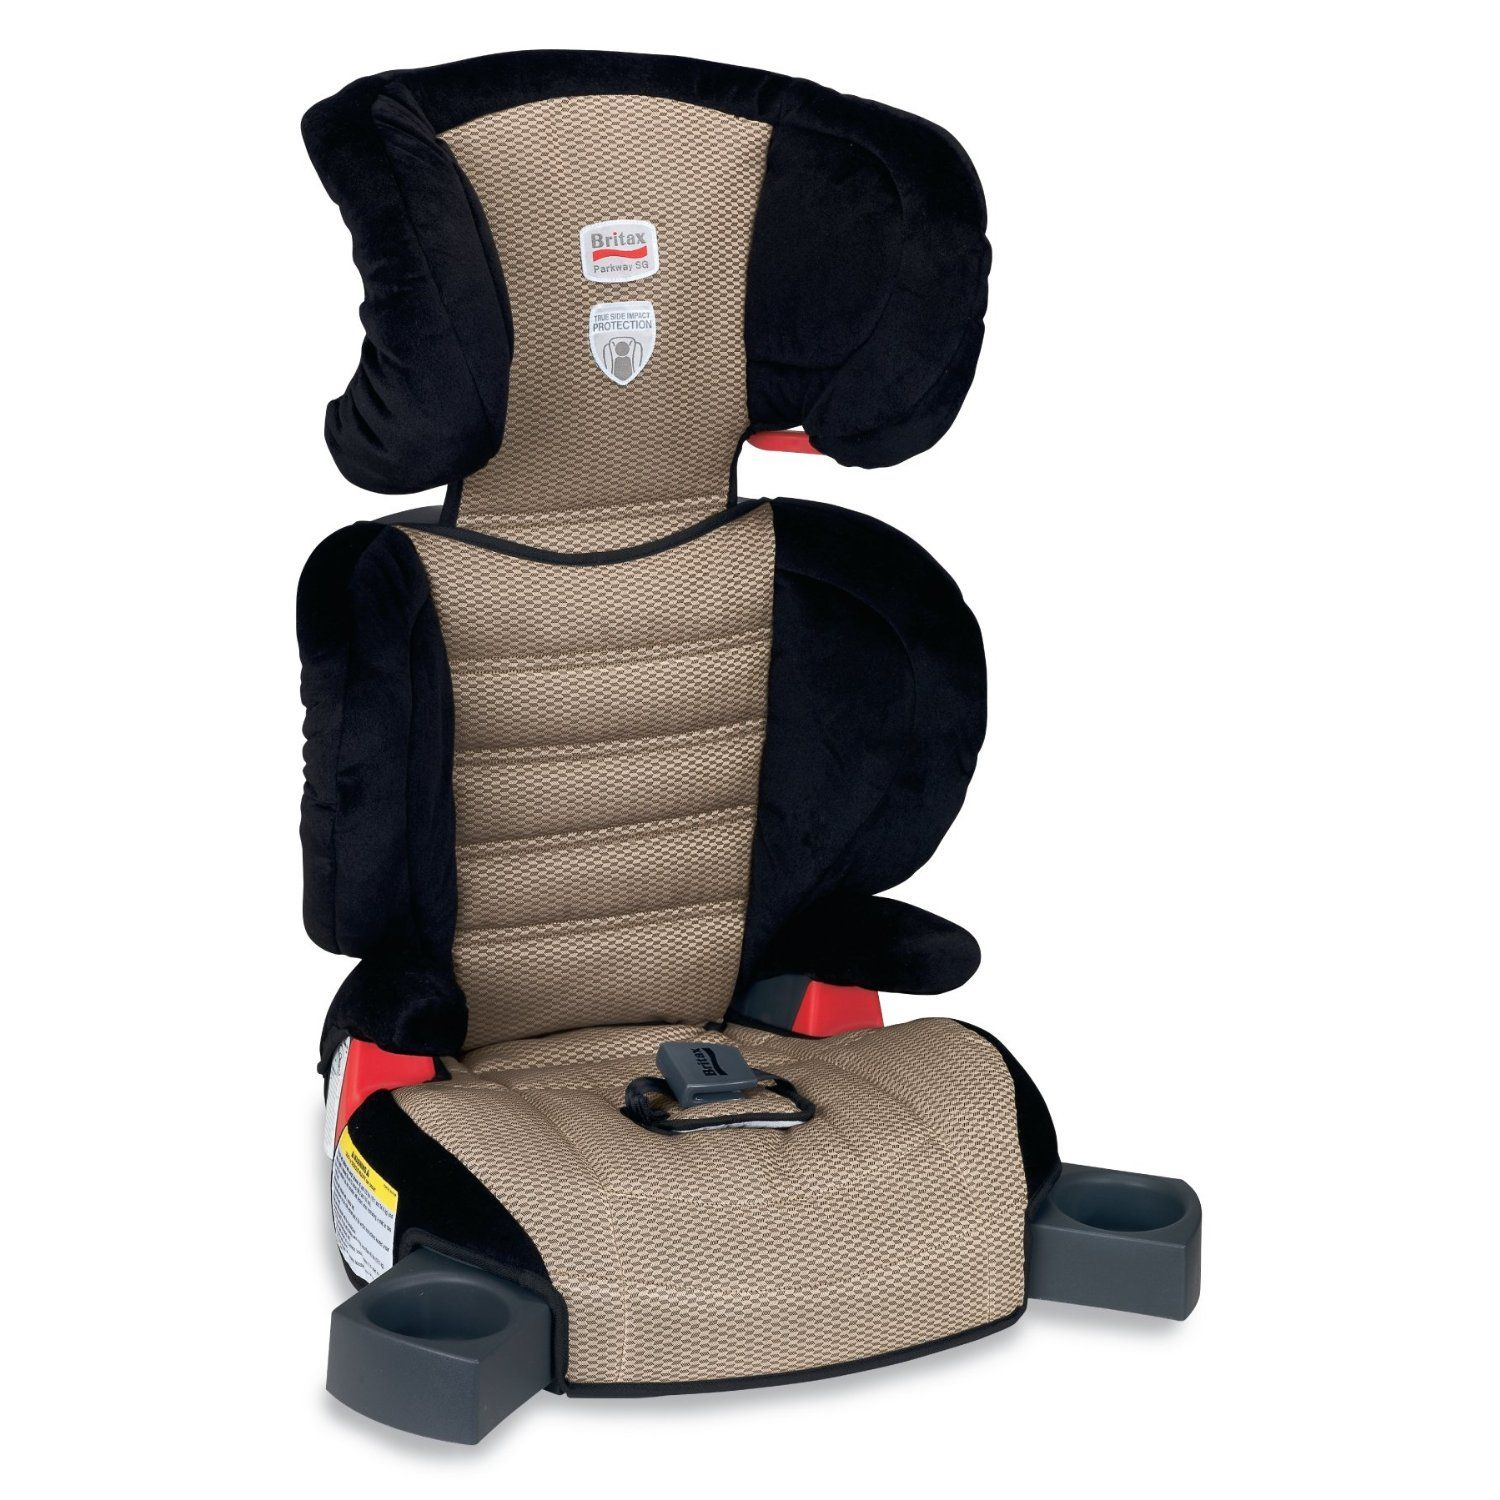 Child Safety Booster Car Seats, Britax Parkway Secure Guard Booster